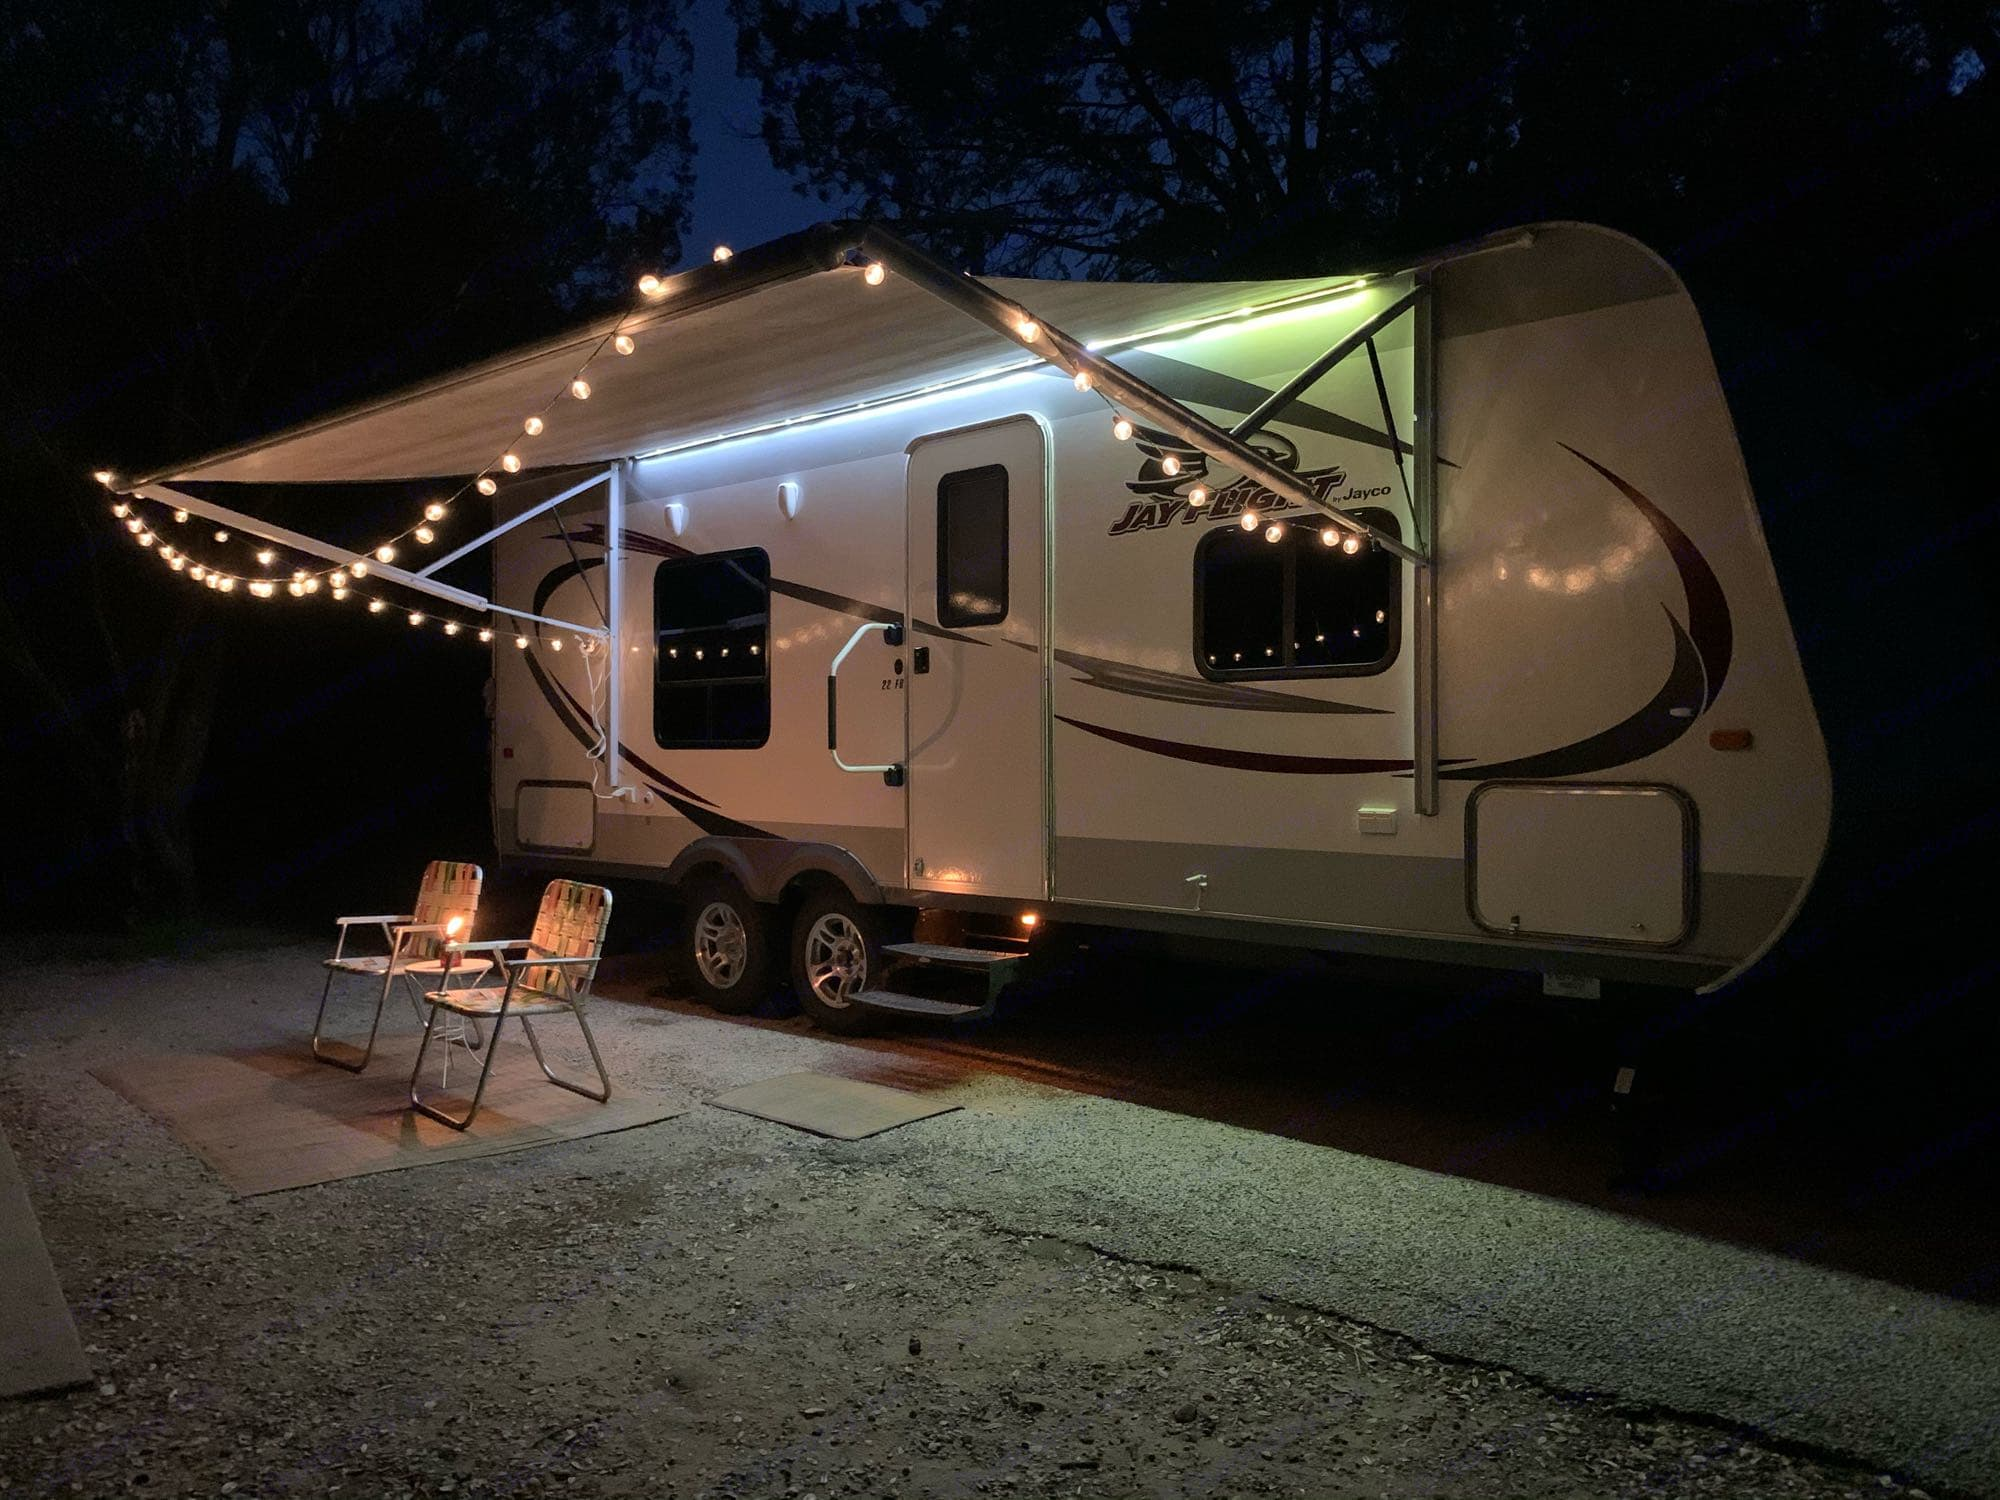 Camping at it's finest! Spend a peacefull evening under our lit canopy.. Jayco Jay Flight 2014